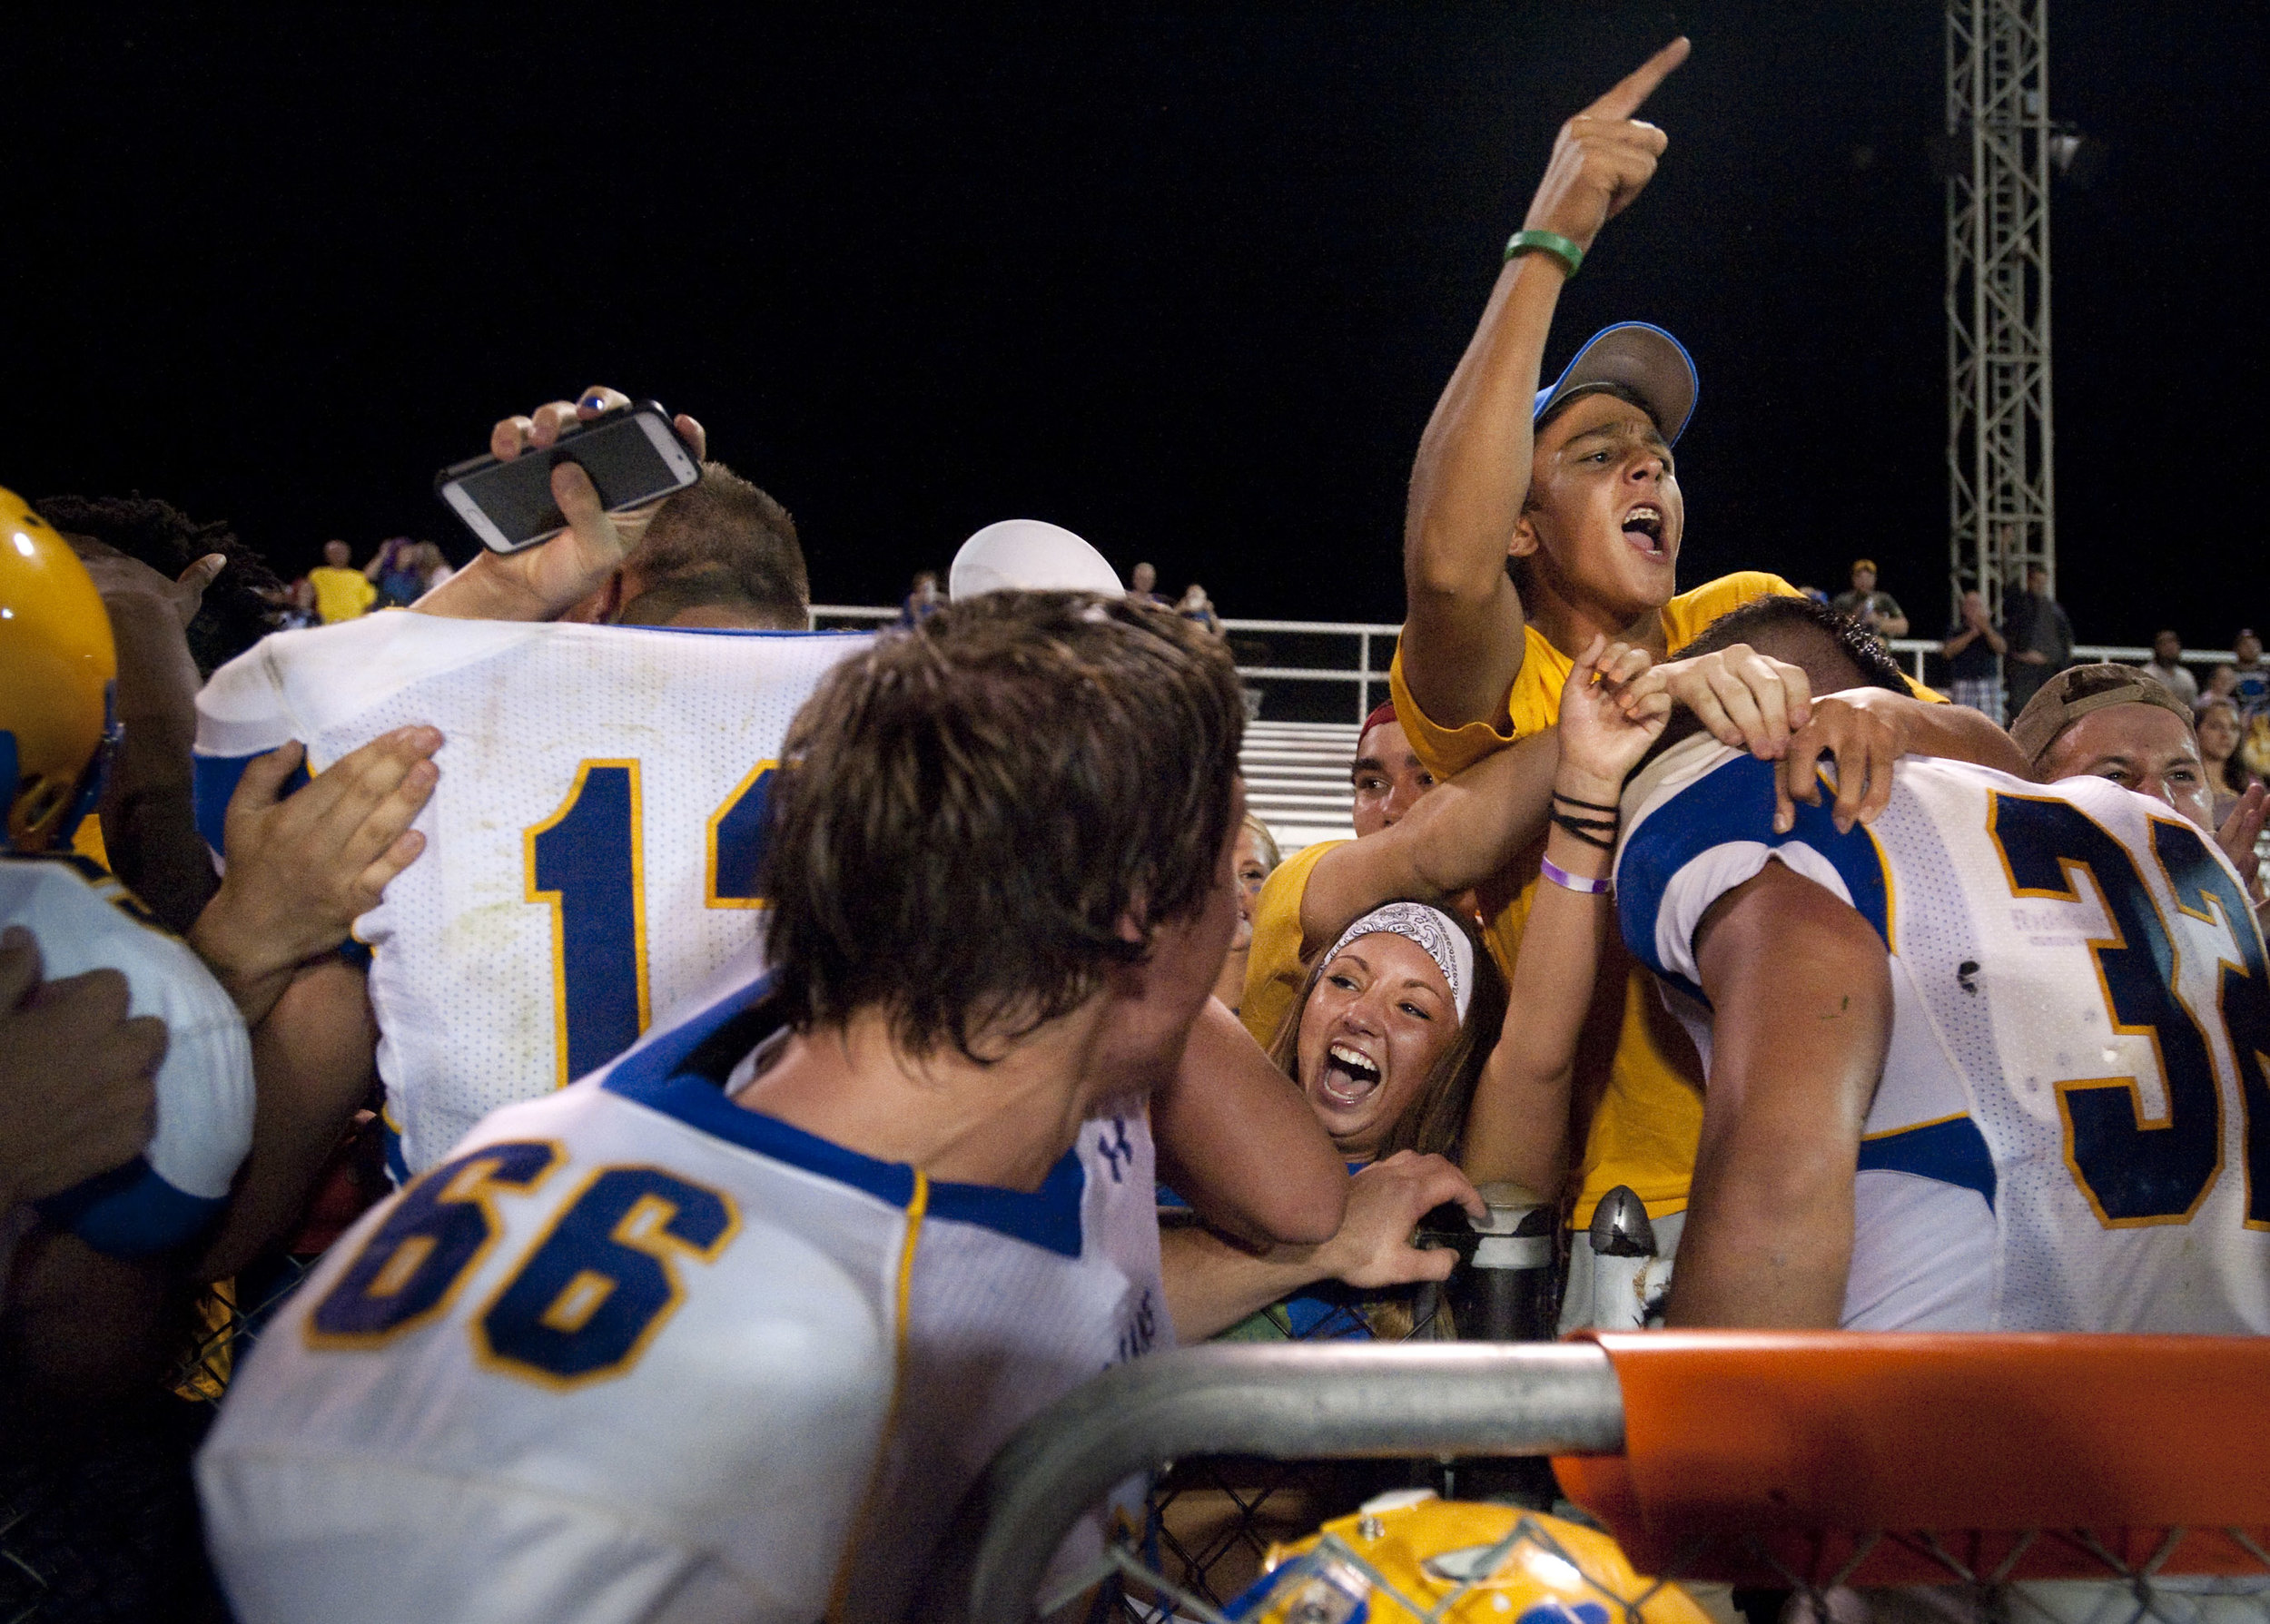 Derry celebrates their win with the student section after beating Latrobe during a football game on Friday, Aug. 26, 2016 Latrobe's Memorial Stadium. Derry won 28-20.